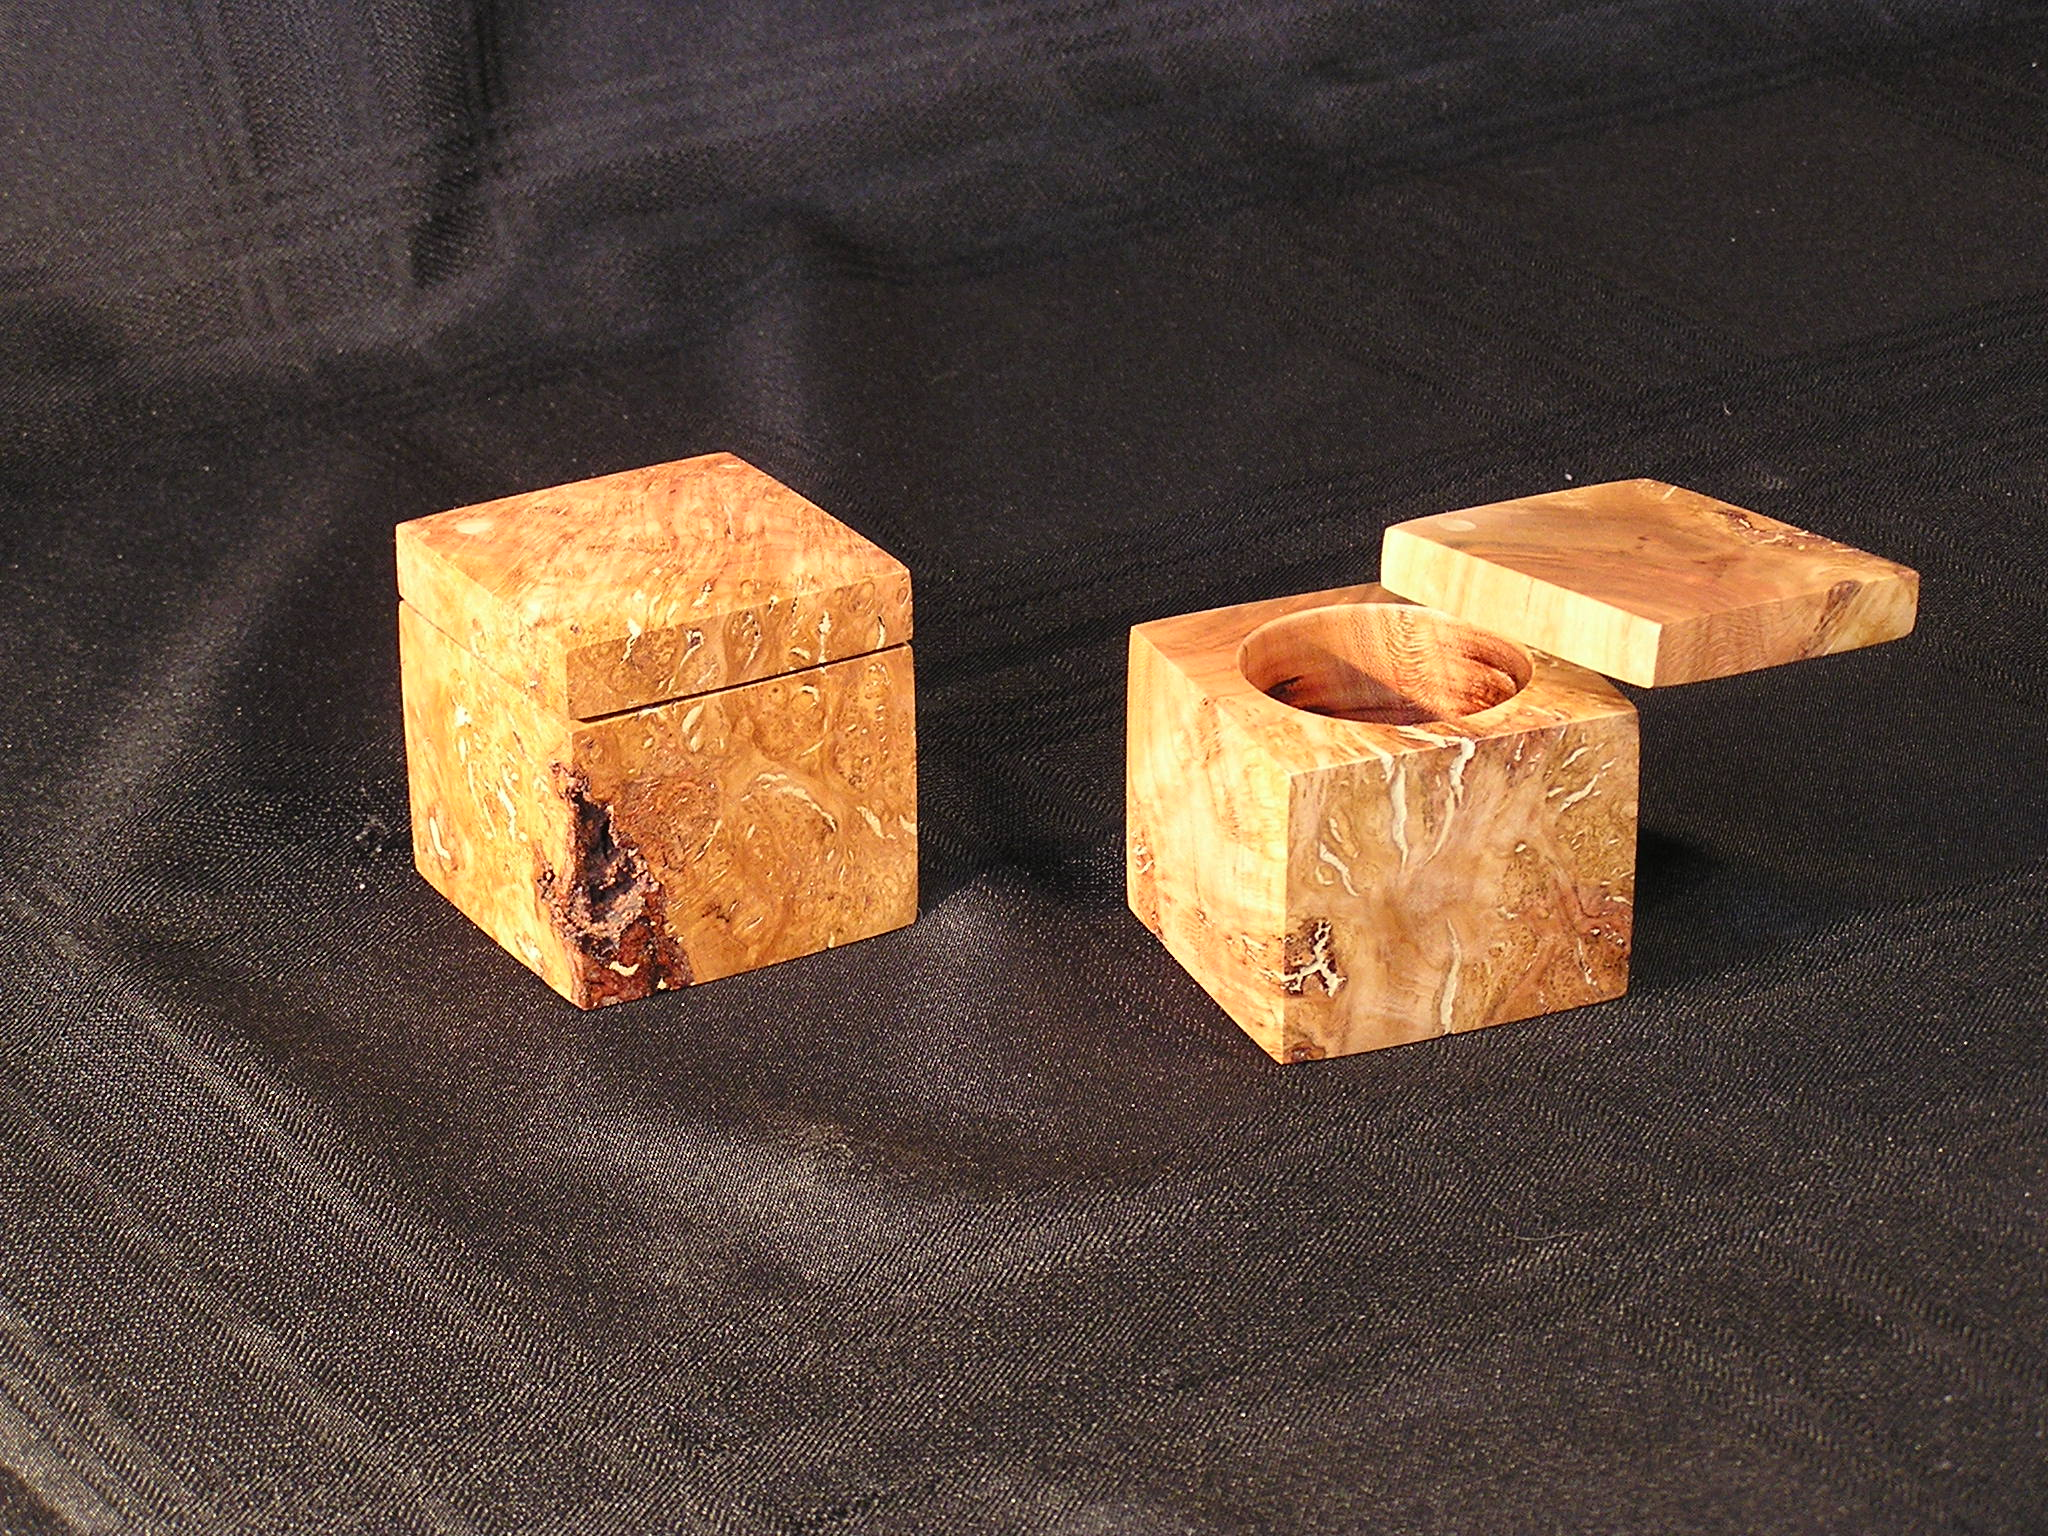 "Ring Boxes for Valentines, Proposal, and Weddings Wood: Cherry Burl Size: 2 1/2"" x 2 1/2"" x 2 1/2"" Finish with a clear oil hand rubber"